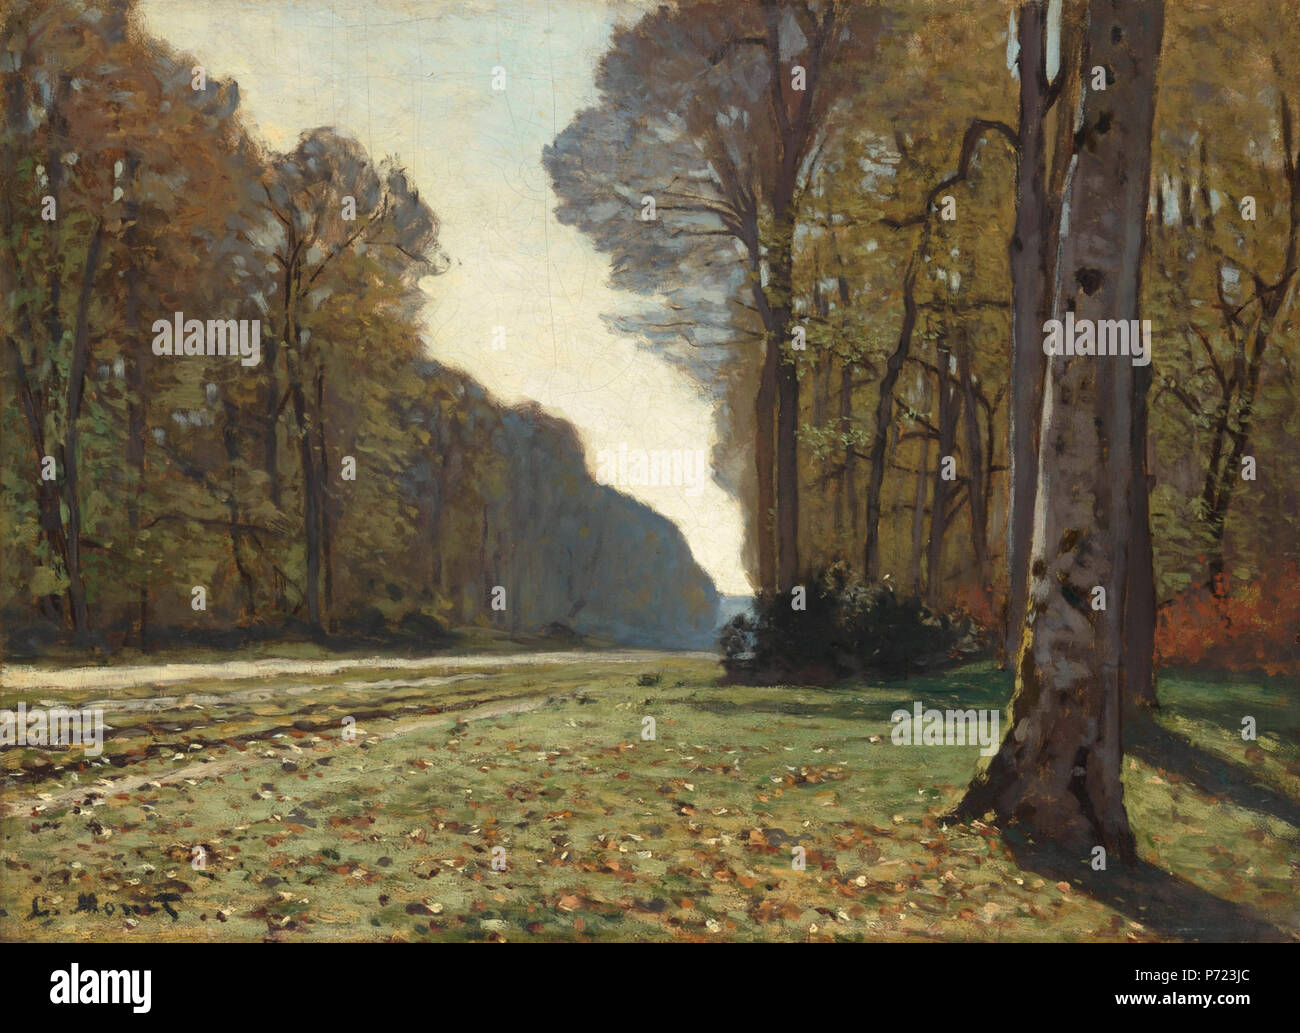 In 1863 Monet left Gleyre's studio with his friend Bazille and embarked on a pilgrimage to the favourite location of previous landscape artists of the Barbizon school – the Forest of Fontainebleau. There, he was able to rediscover the whole range of familiar themes that had been celebrated for several decades, including the Pavé de Chailly, a vast avenue of almost architectural proportions which acted as a gateway to the forest. He thus had the opportunity to work harder than ever at painting en plein air. According to his friend, Monet was at that point 'pretty good at landscapes', thanks to  - Stock Image